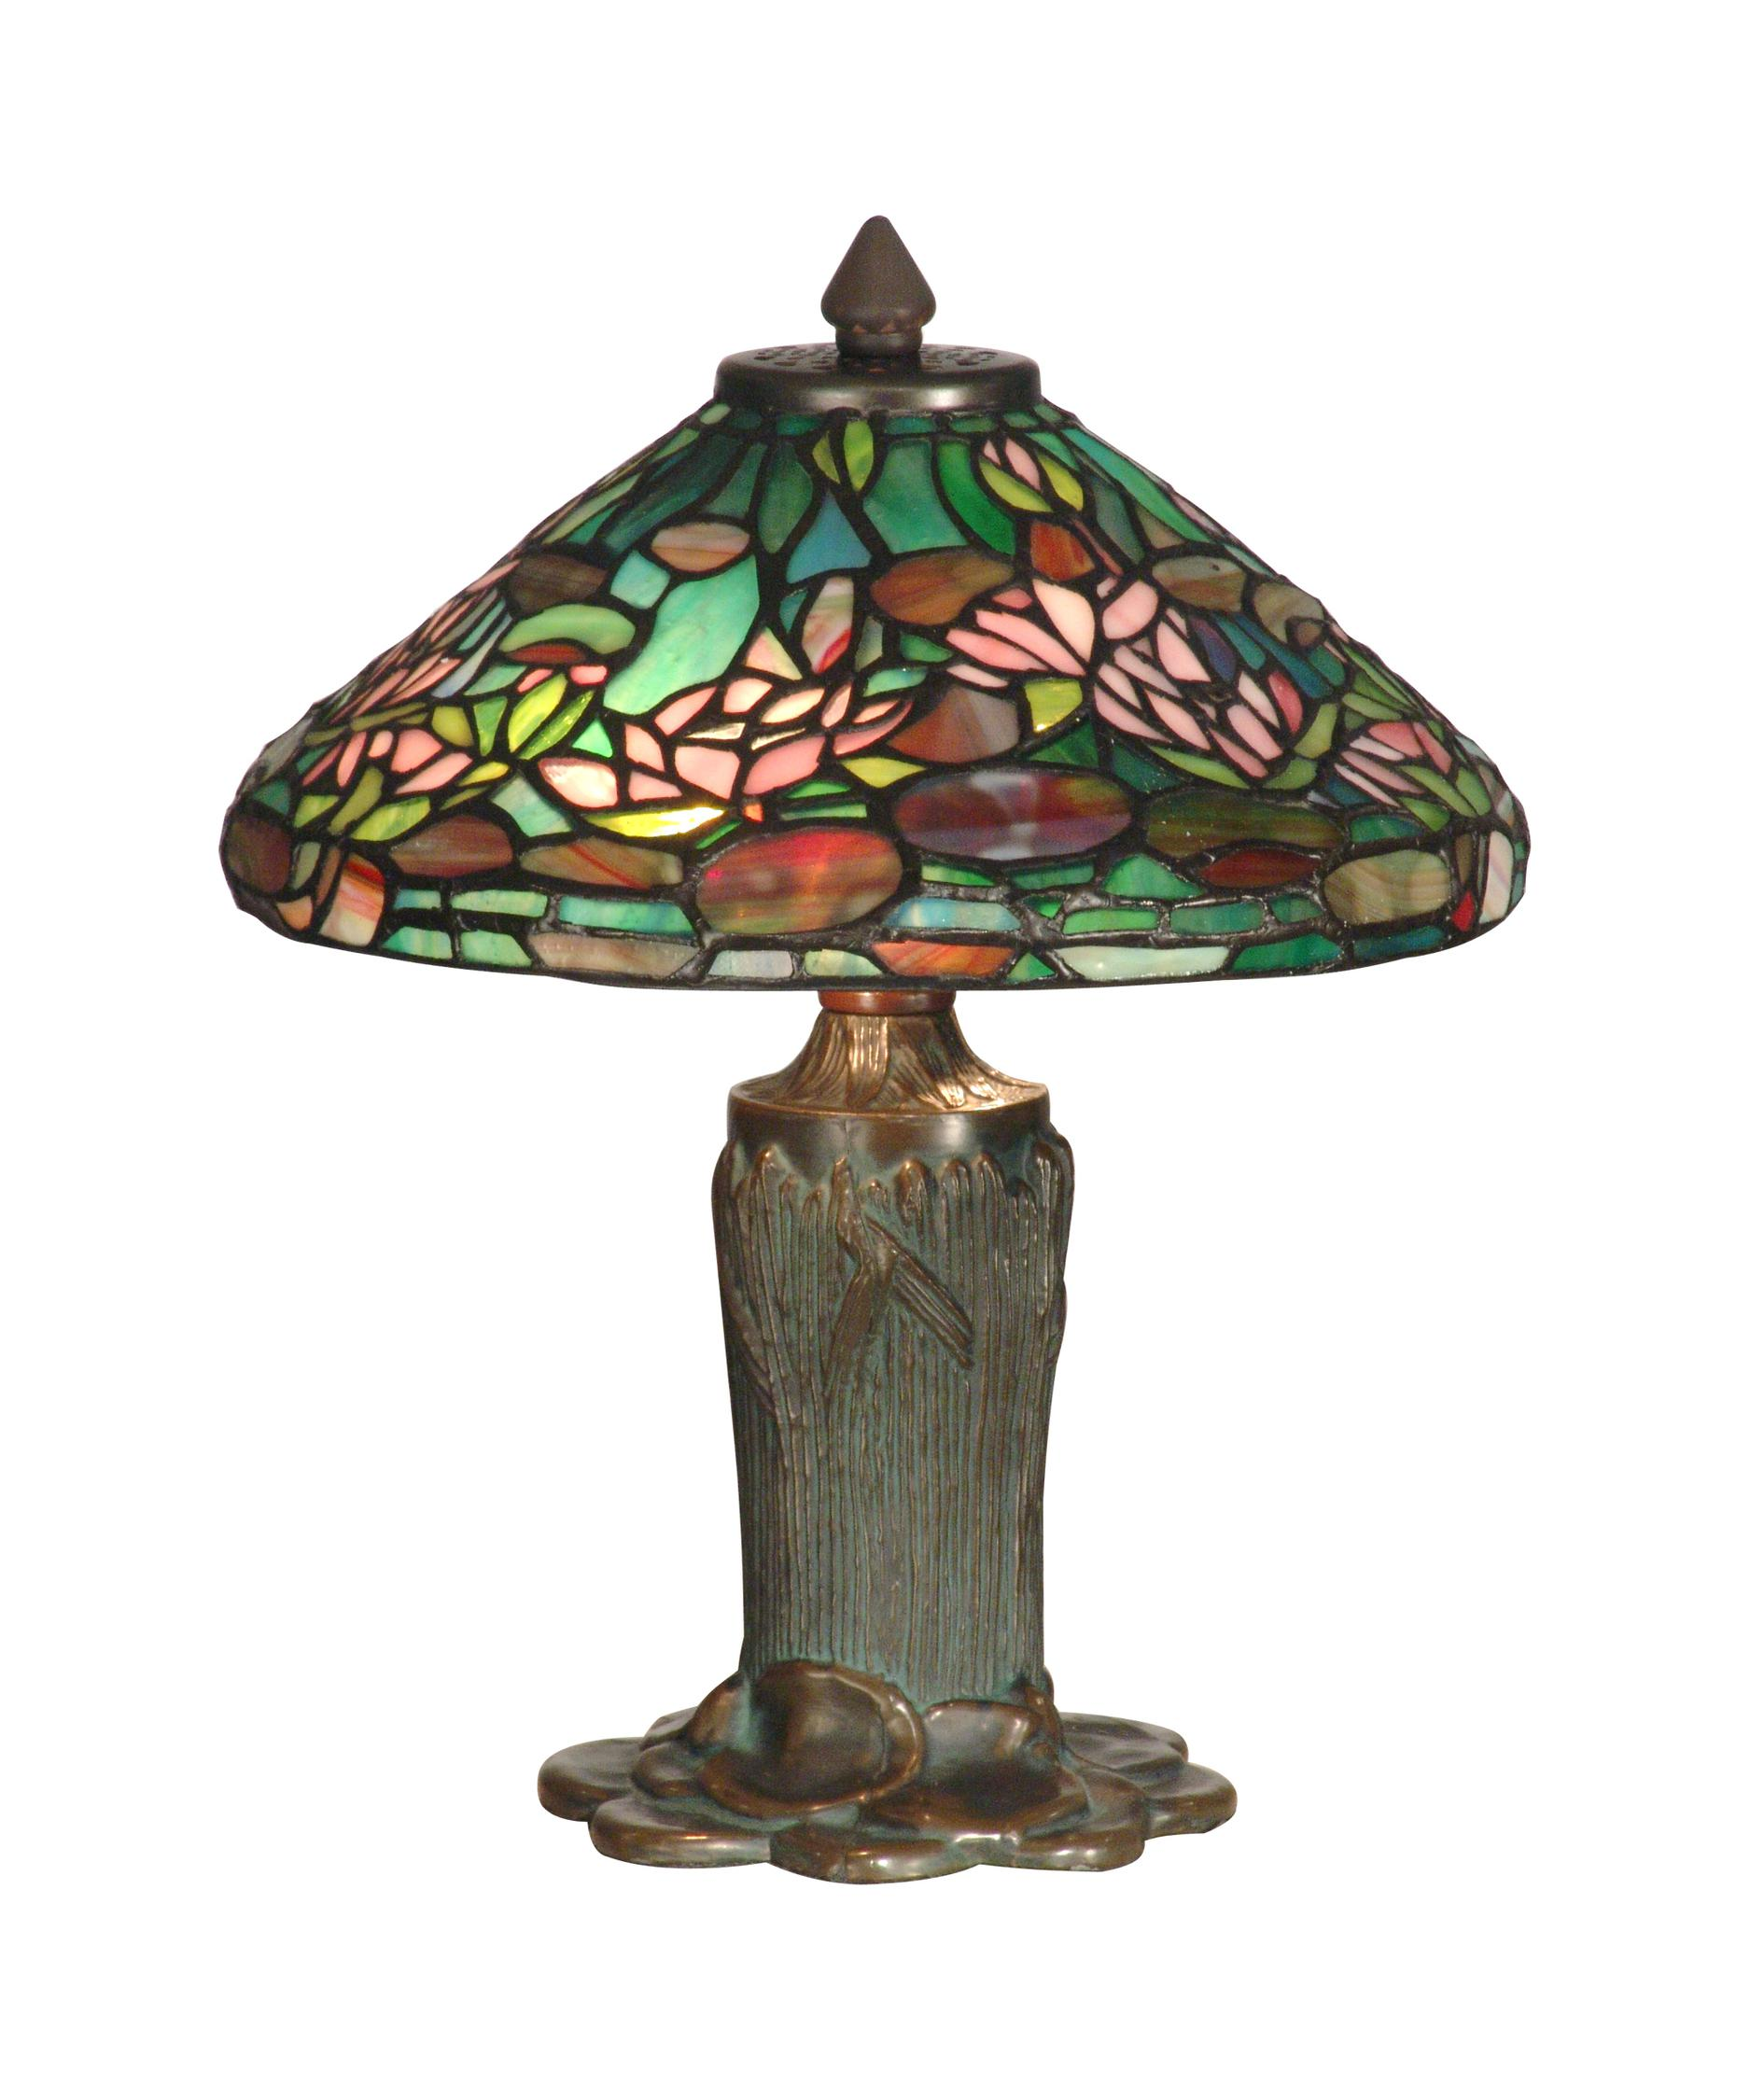 Dale tiffany tt10334 floral leaf 12 inch table lamp for 12 inch table lamp